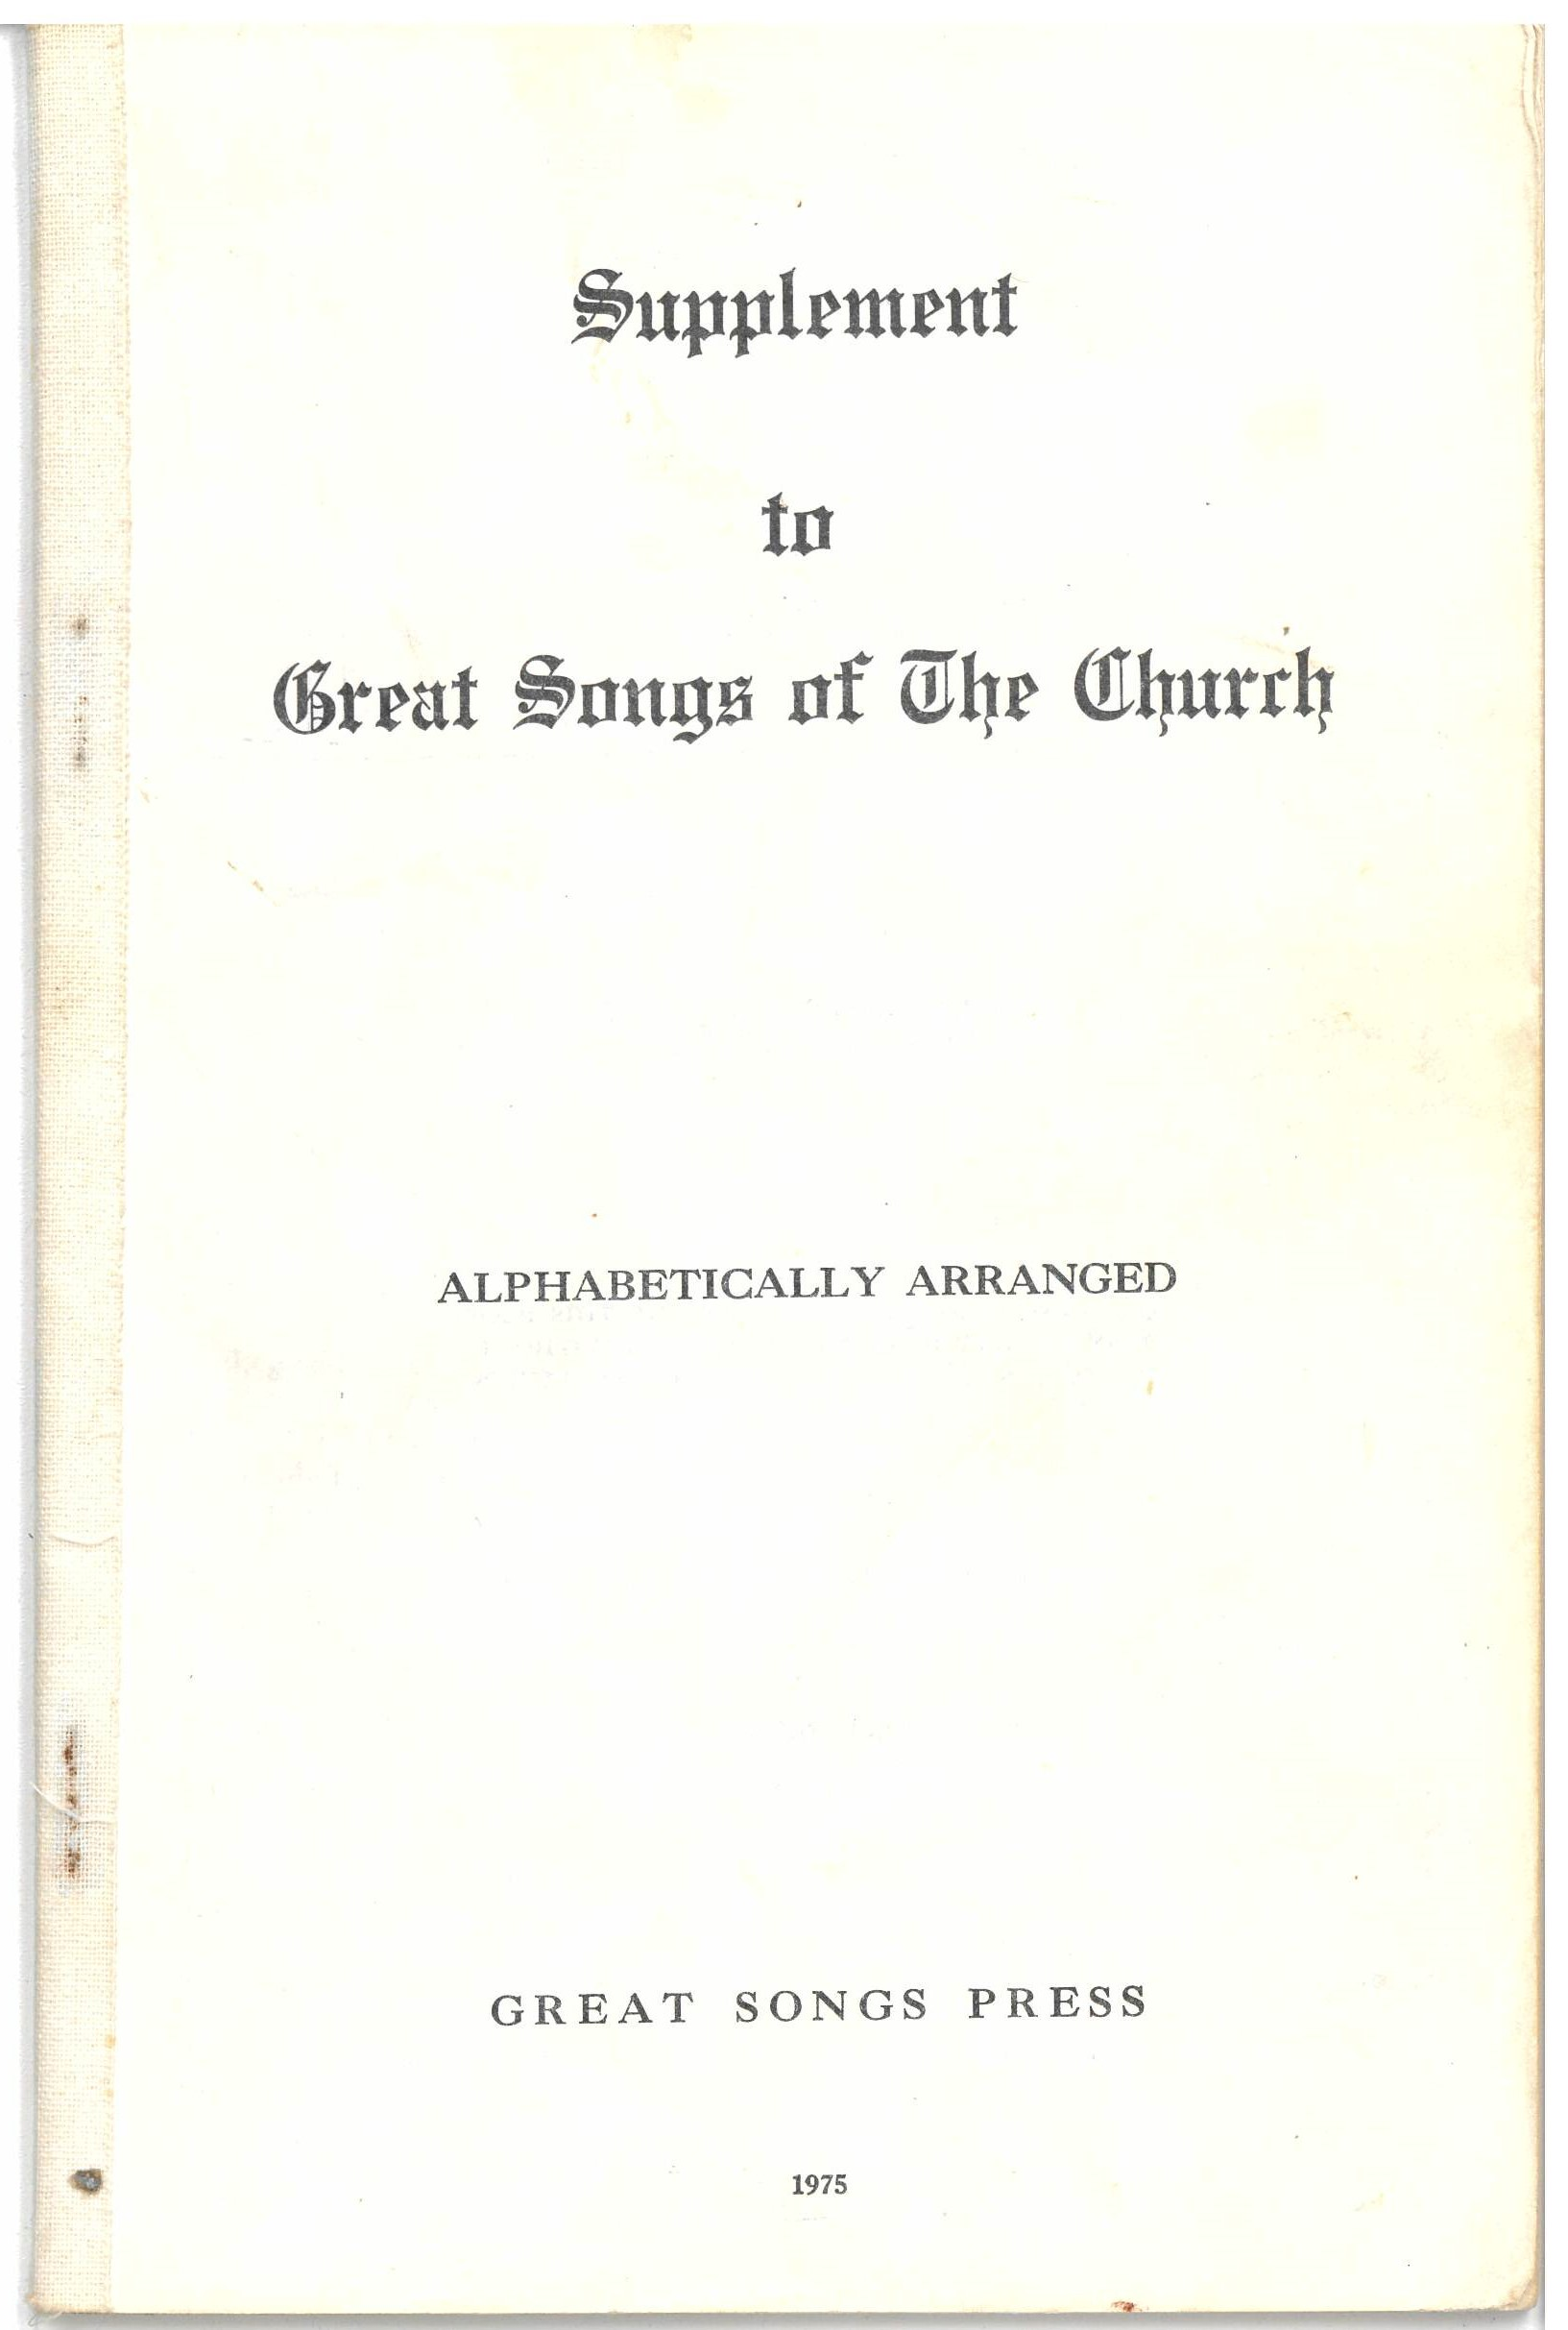 Supplement to Great Songs of the Church, Alphabetically Arranged. Great Songs Press [Abilene, Texas], 1974. Front cover.